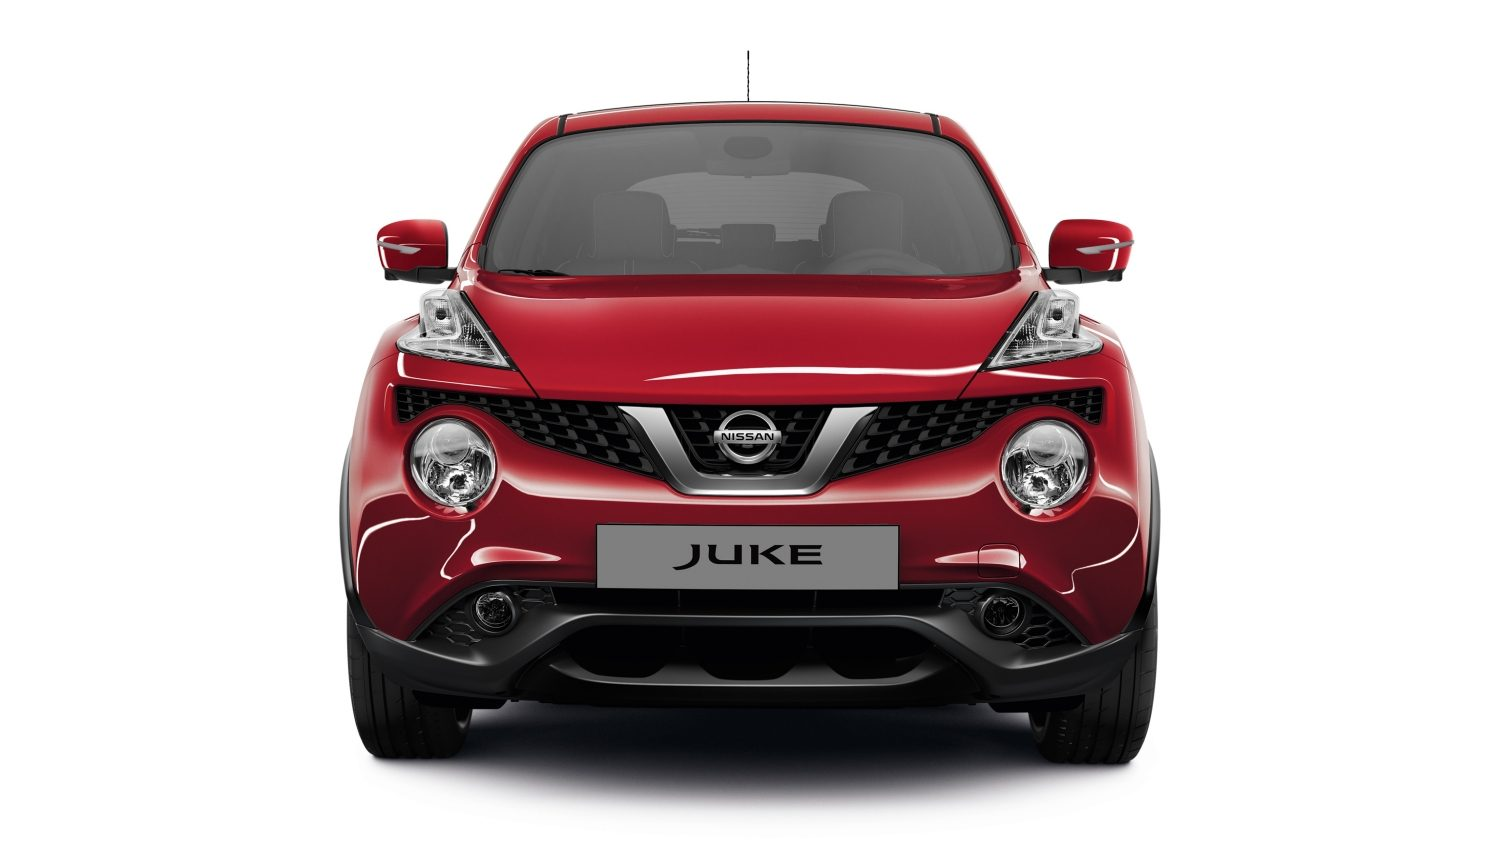 design petit crossover suv nissan juke nissan. Black Bedroom Furniture Sets. Home Design Ideas